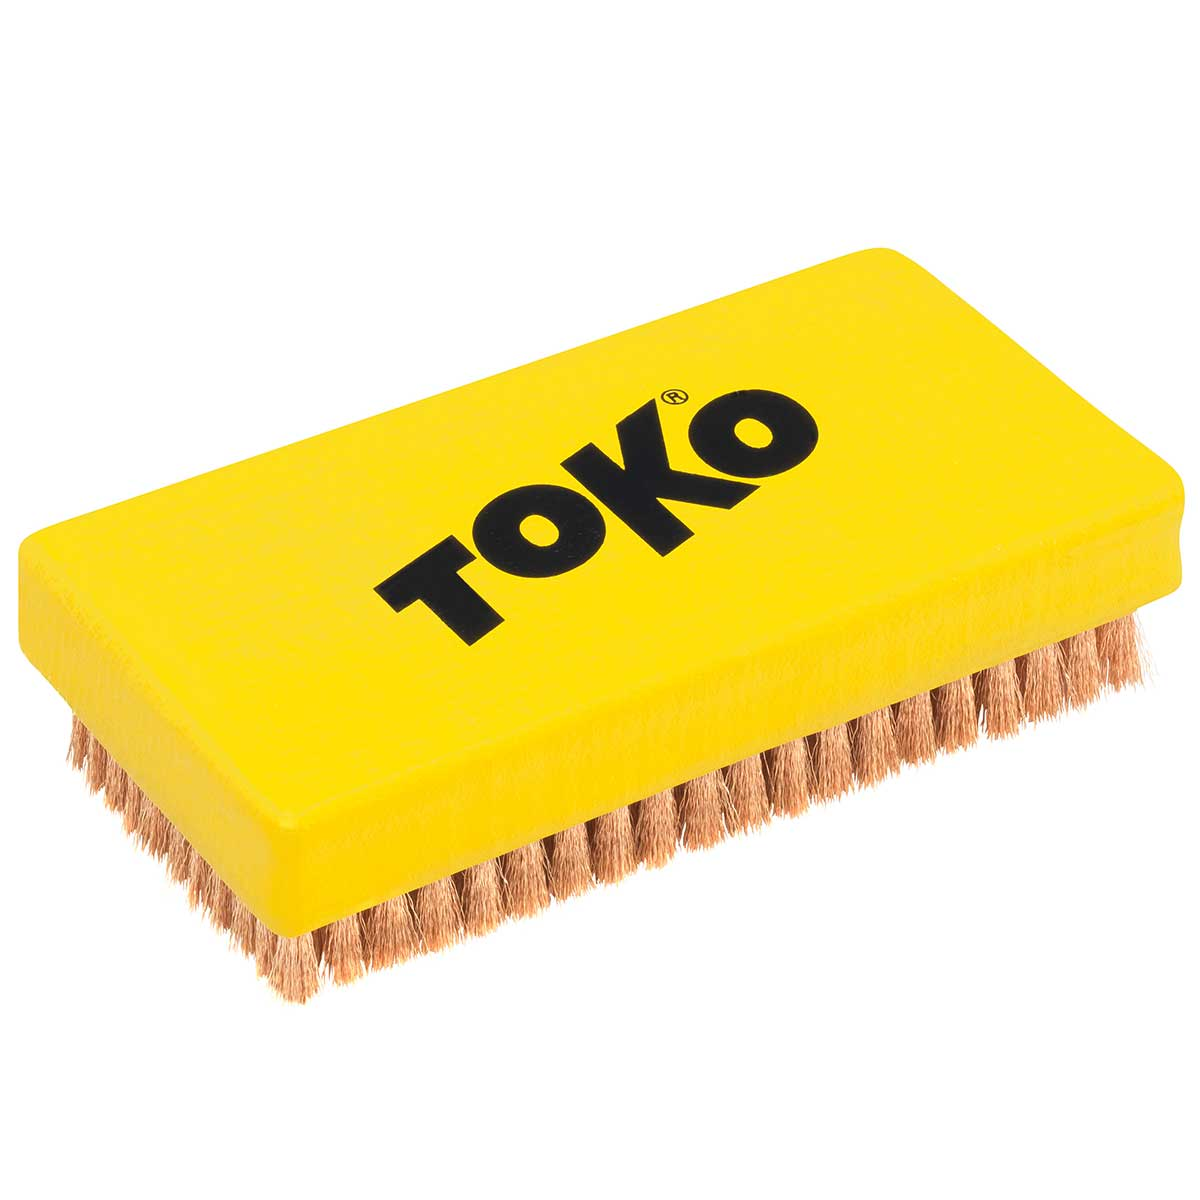 Top of Toko Base Brush Copper in Yellow